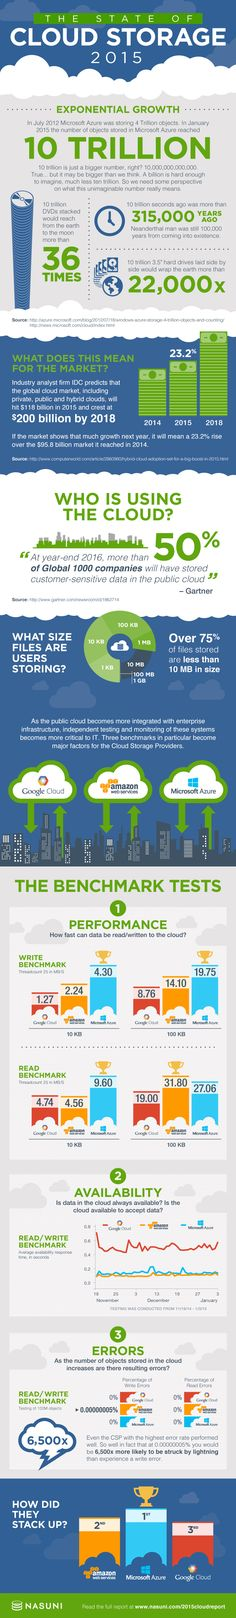 The State of Cloud Storage 2015 #infographic #Storage #Technology #CloudStorage